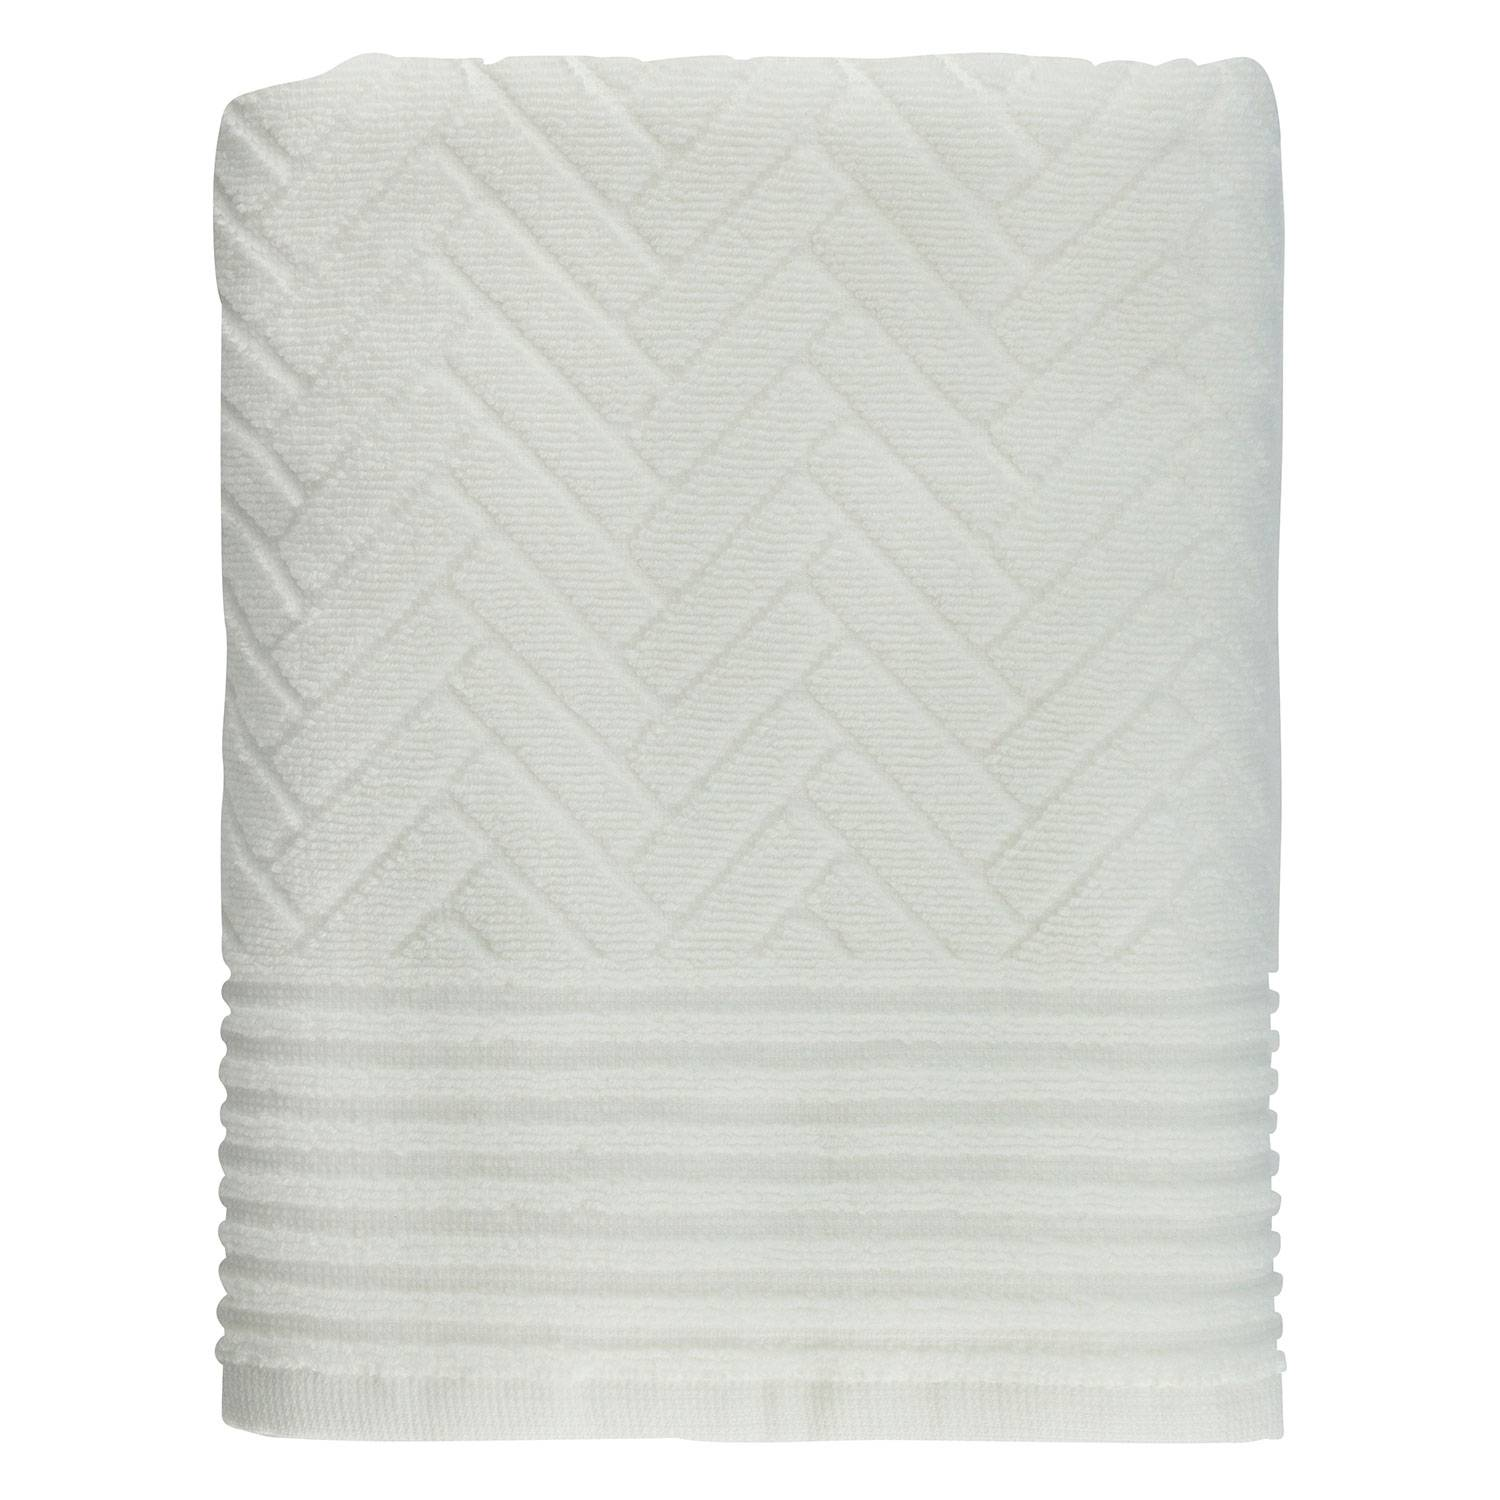 Mette Ditmer Brick Guest Towel 35x55cm 2-Pack, Off-White